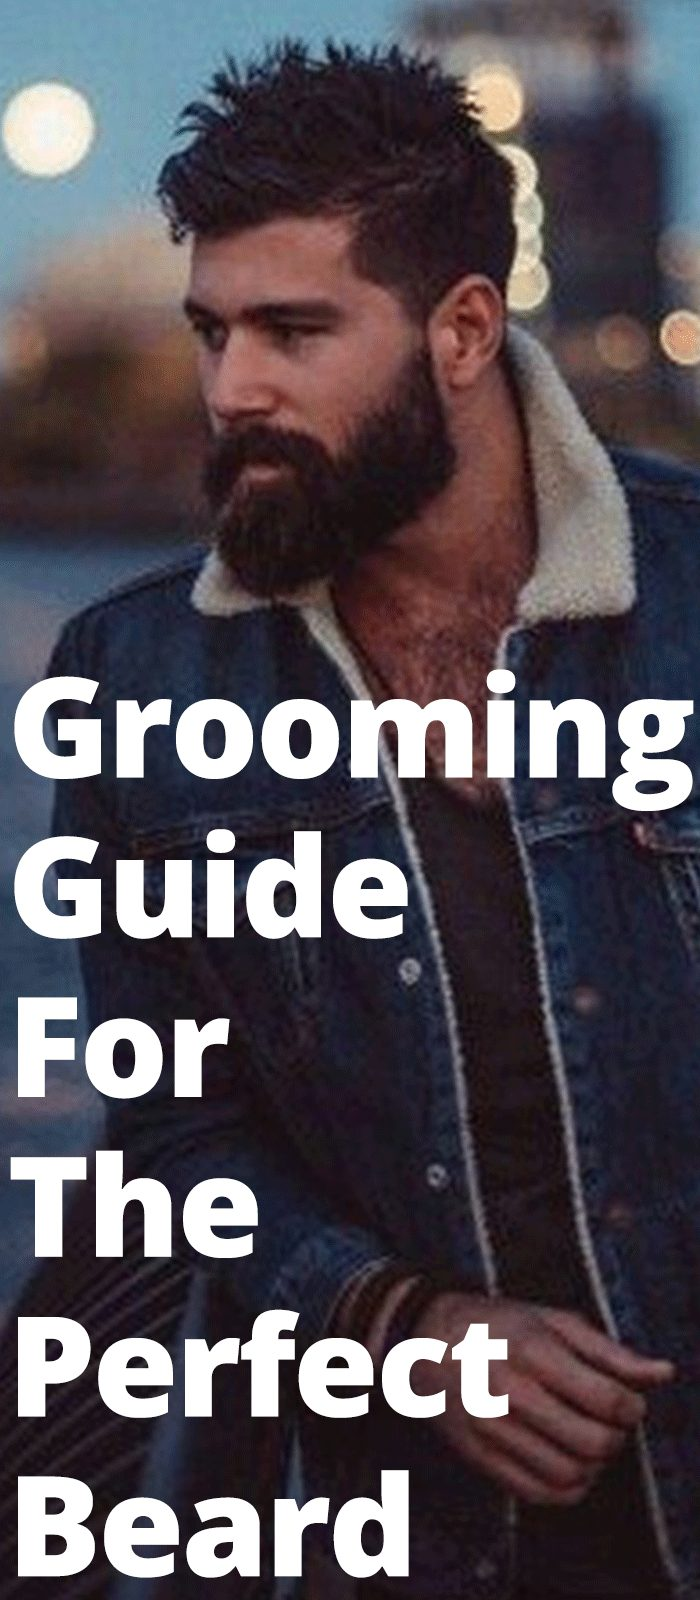 Grooming Guide For The Perfect Beard